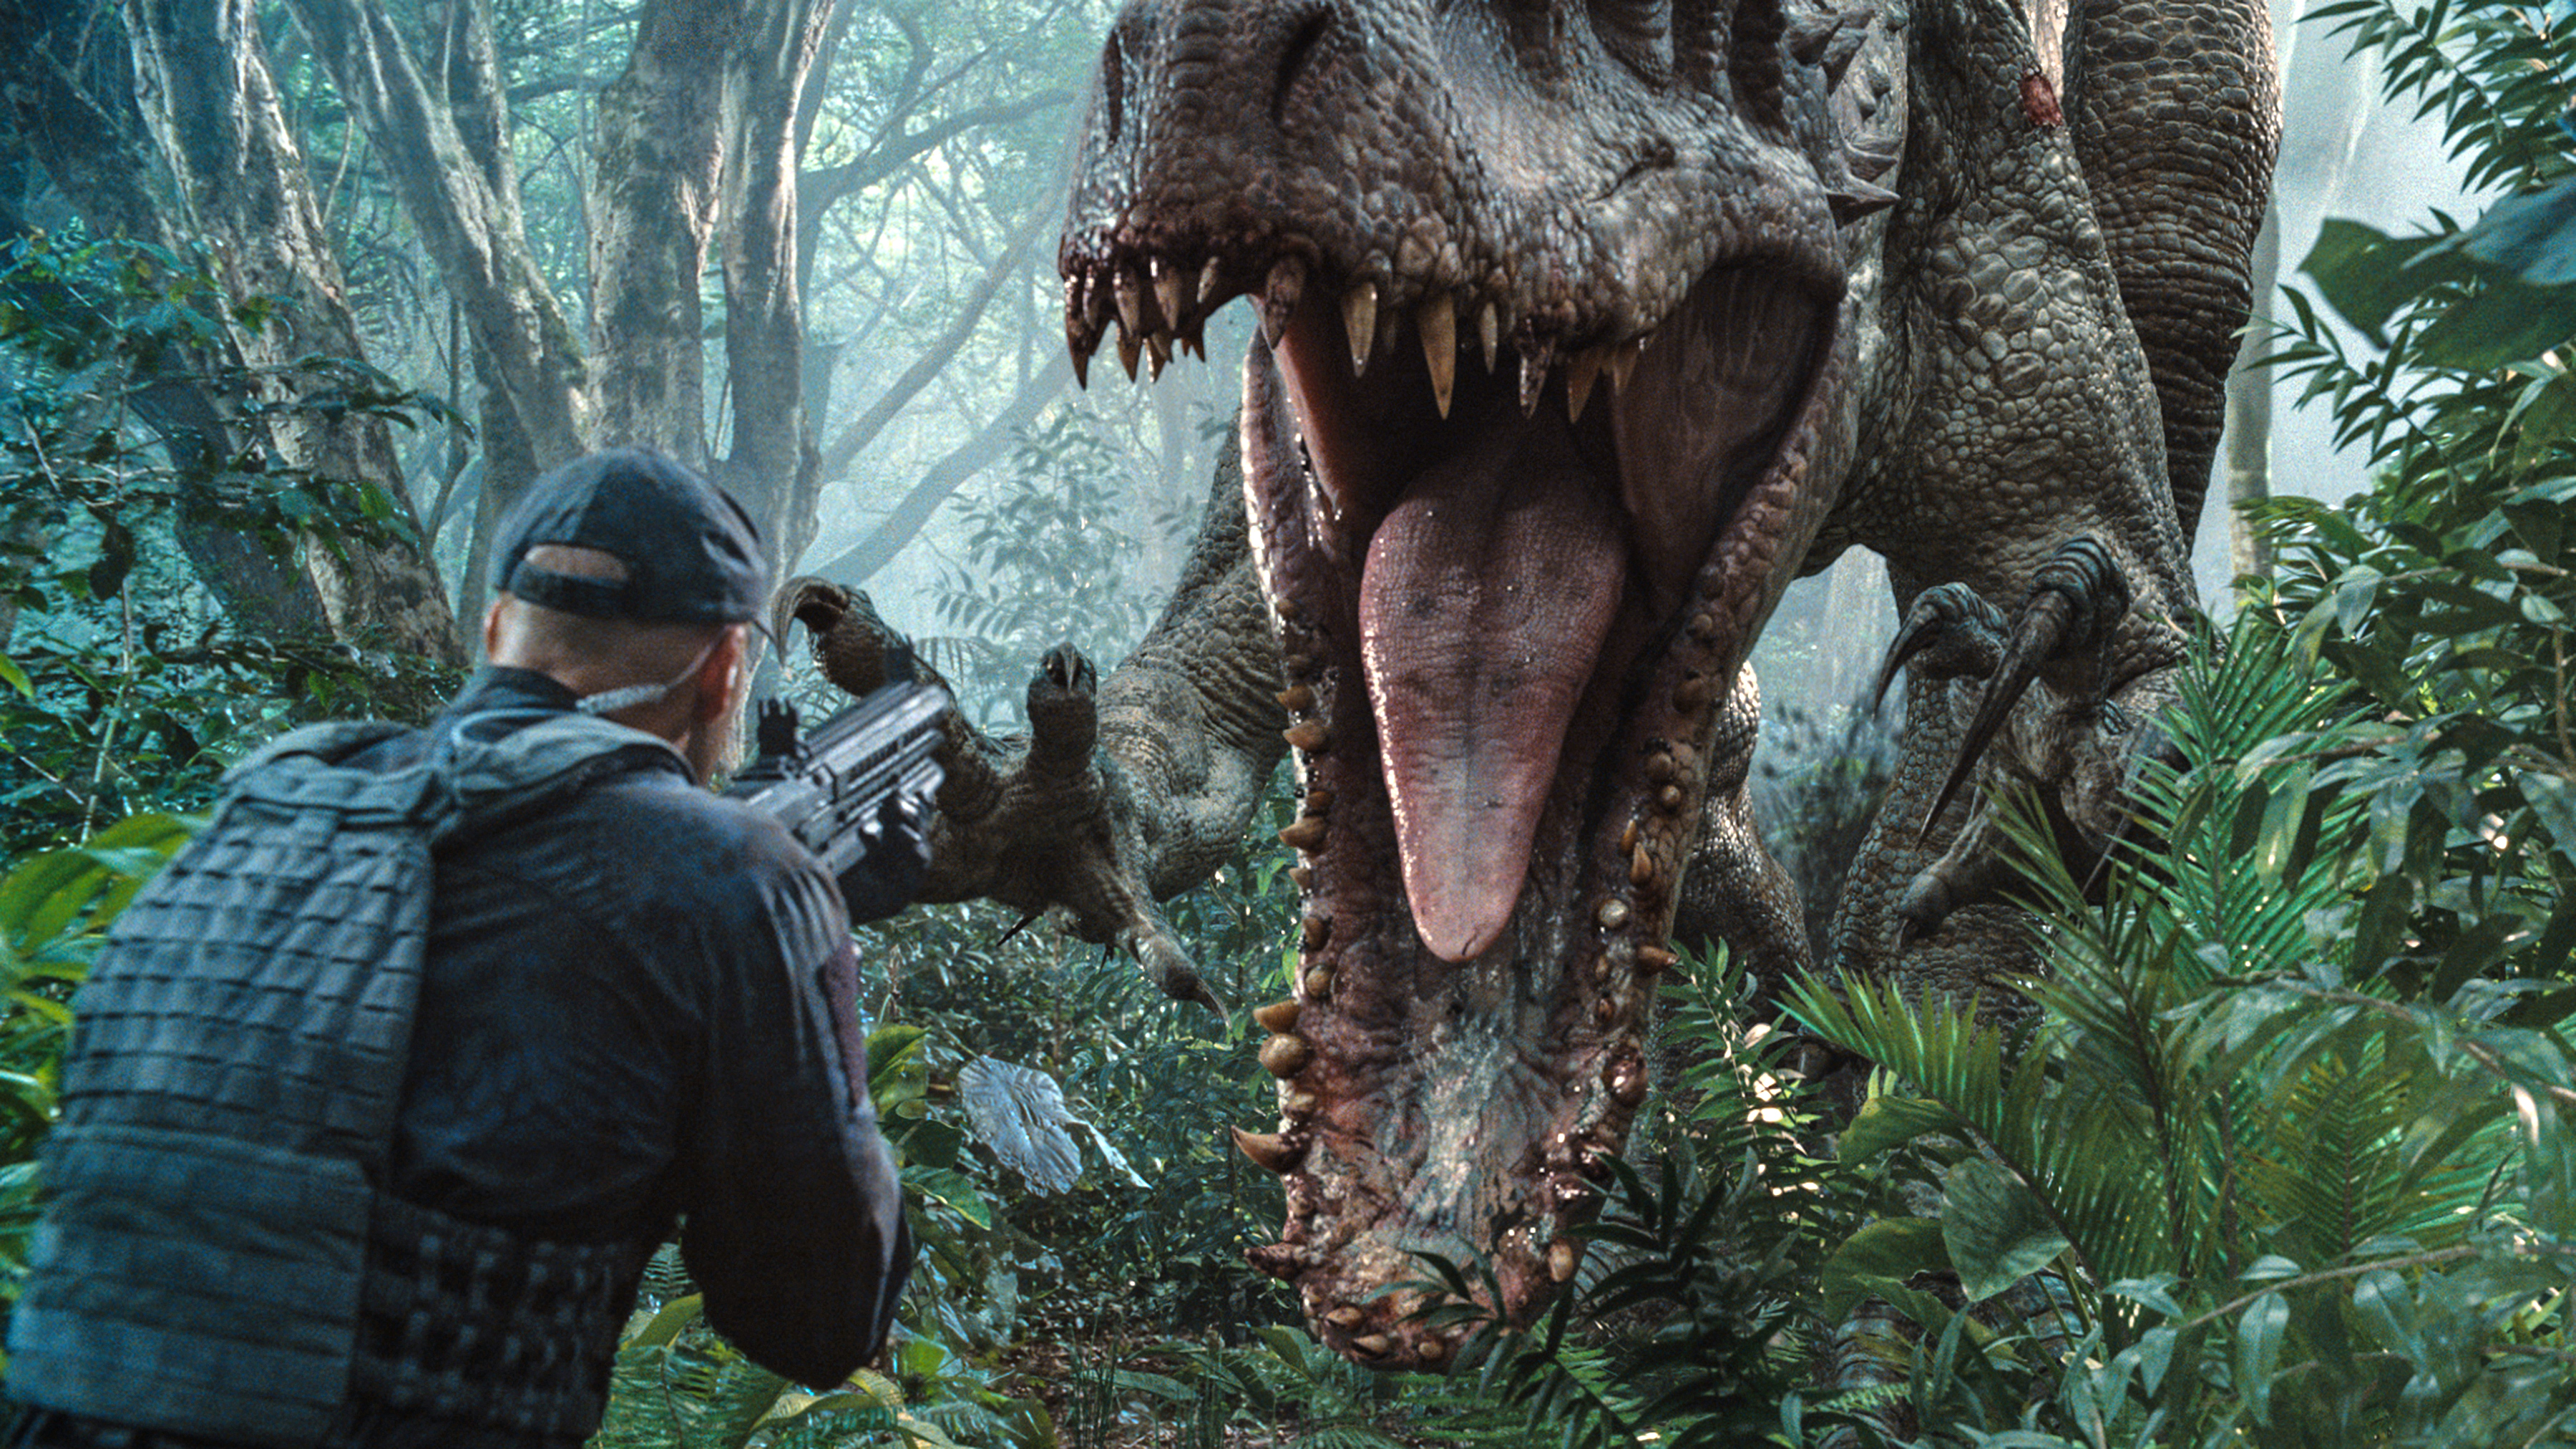 The Indominus Rex readies her attack in Jurassic World.